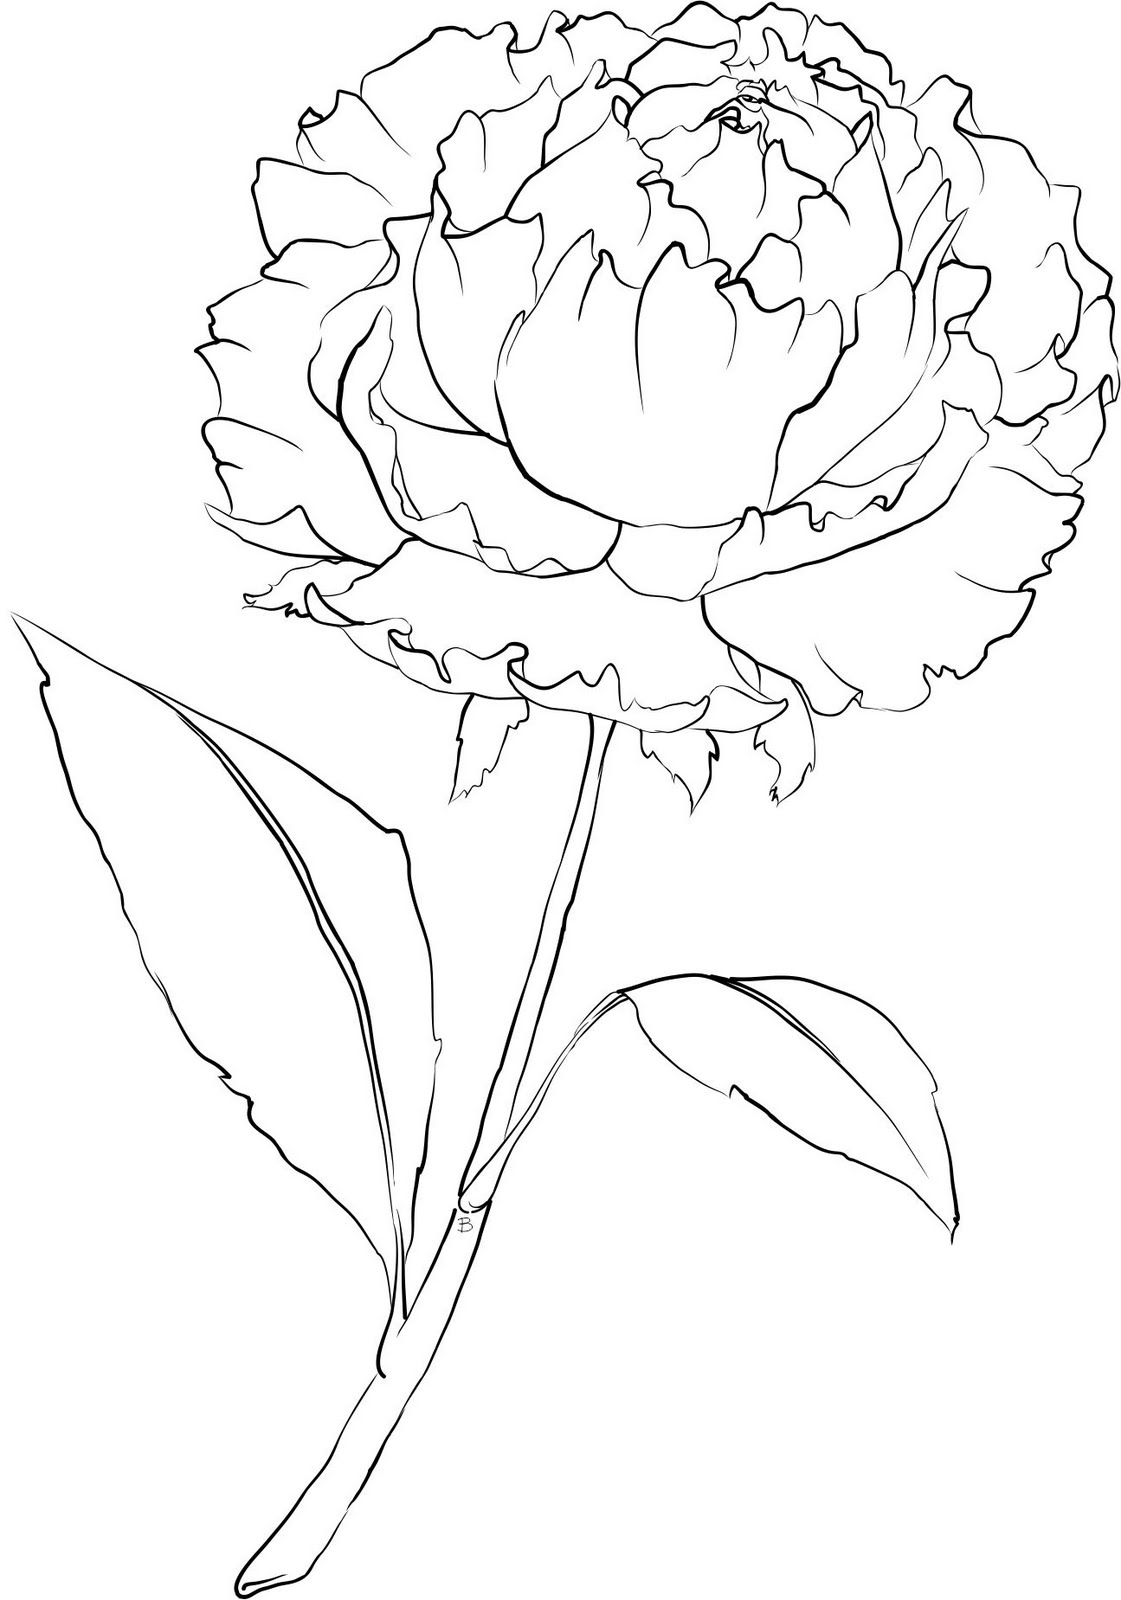 Drawn peony carnation flower Coloring Template/Stencil/ Beccy's  page